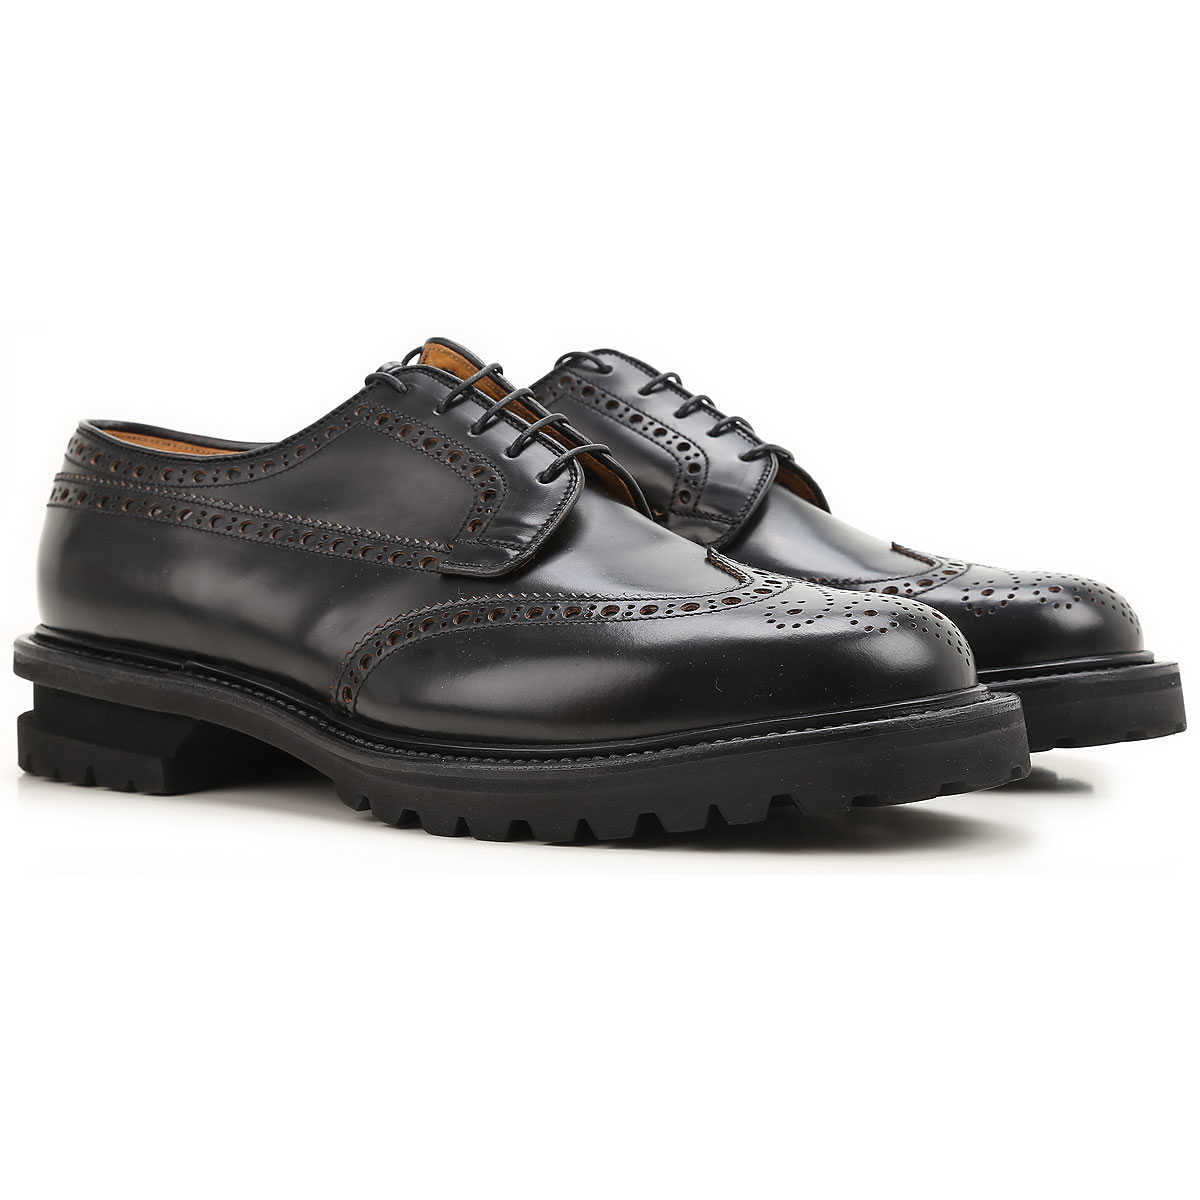 Premiata Brogue Shoes On Sale in Outlet Black - GOOFASH